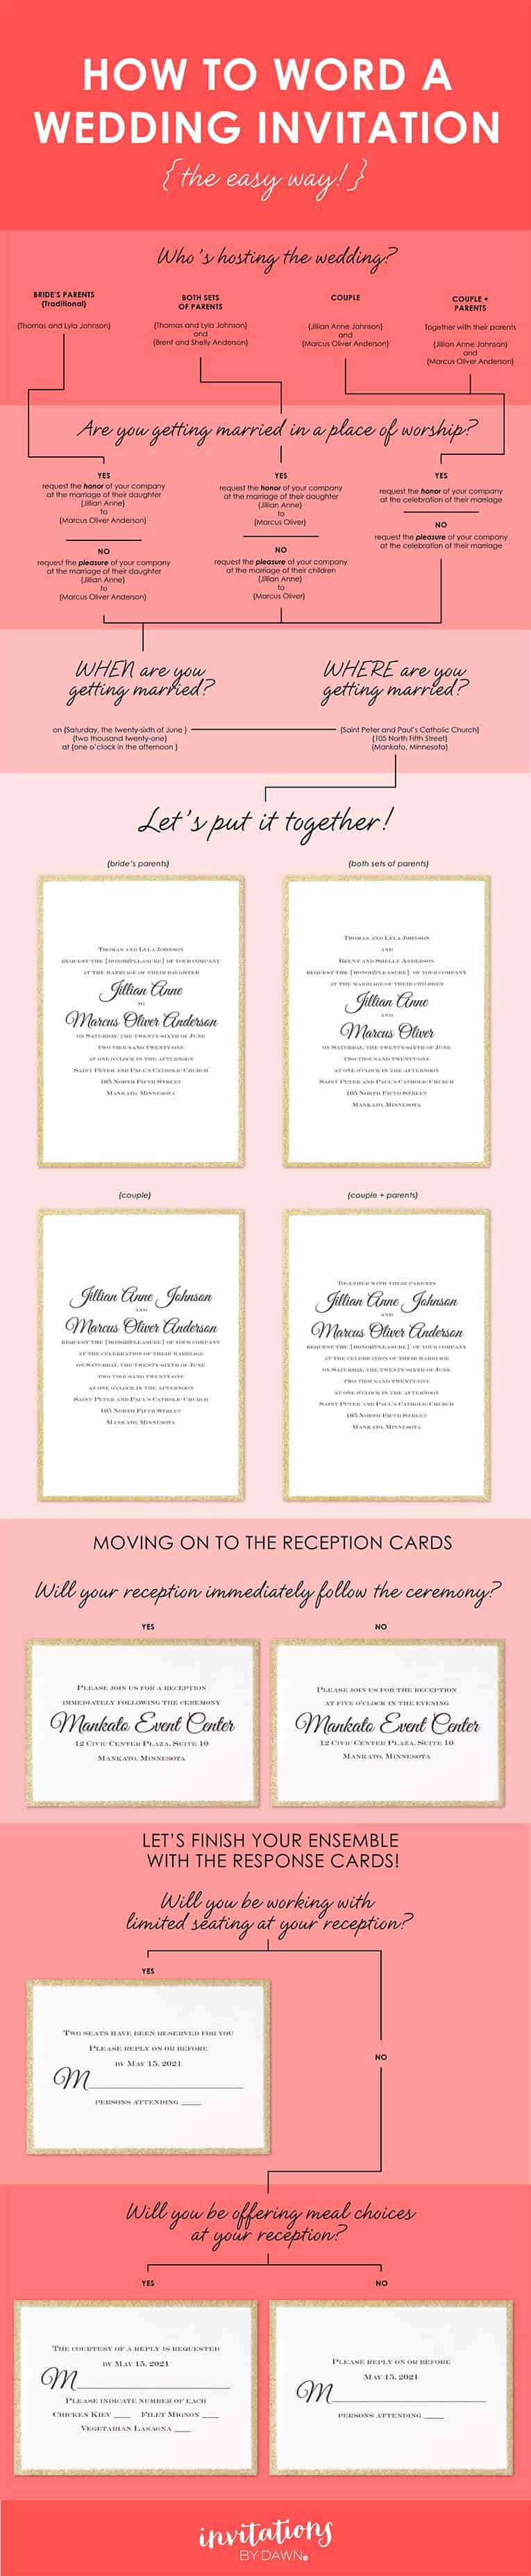 Cute Wedding Invitation Ideas Fresh Wedding Invitations Wording Best Photos Page 2 Of 5